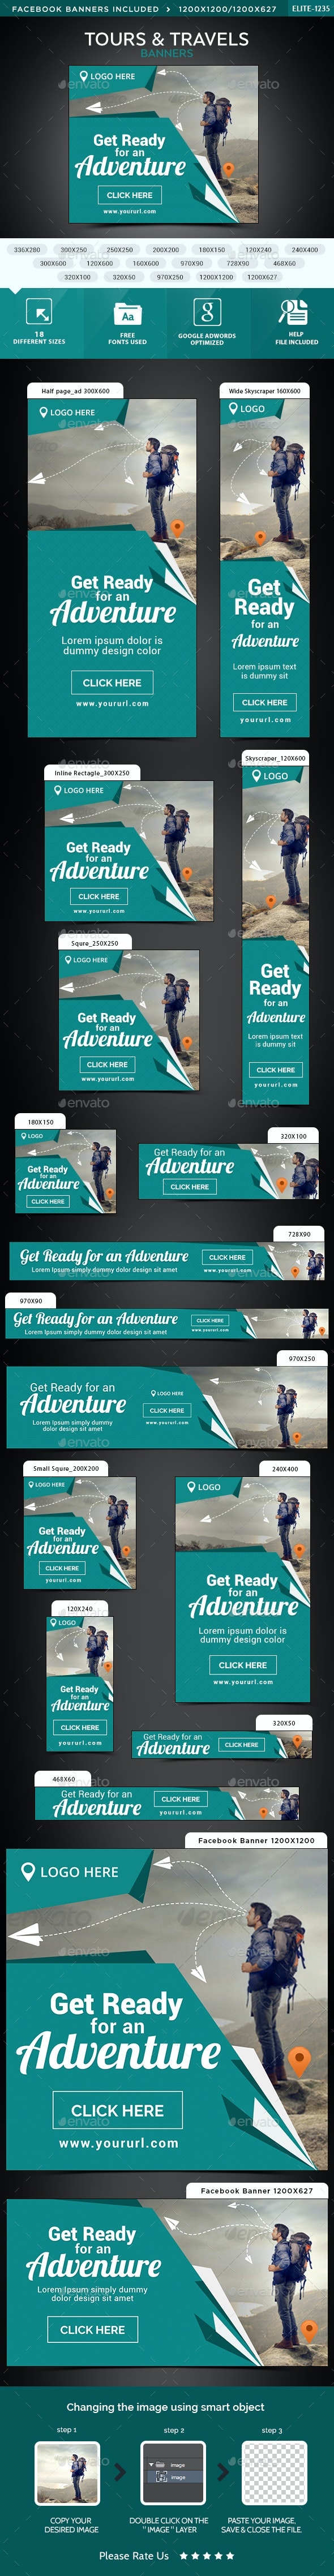 Tours & Travels Banners - Banners & Ads Web Elements